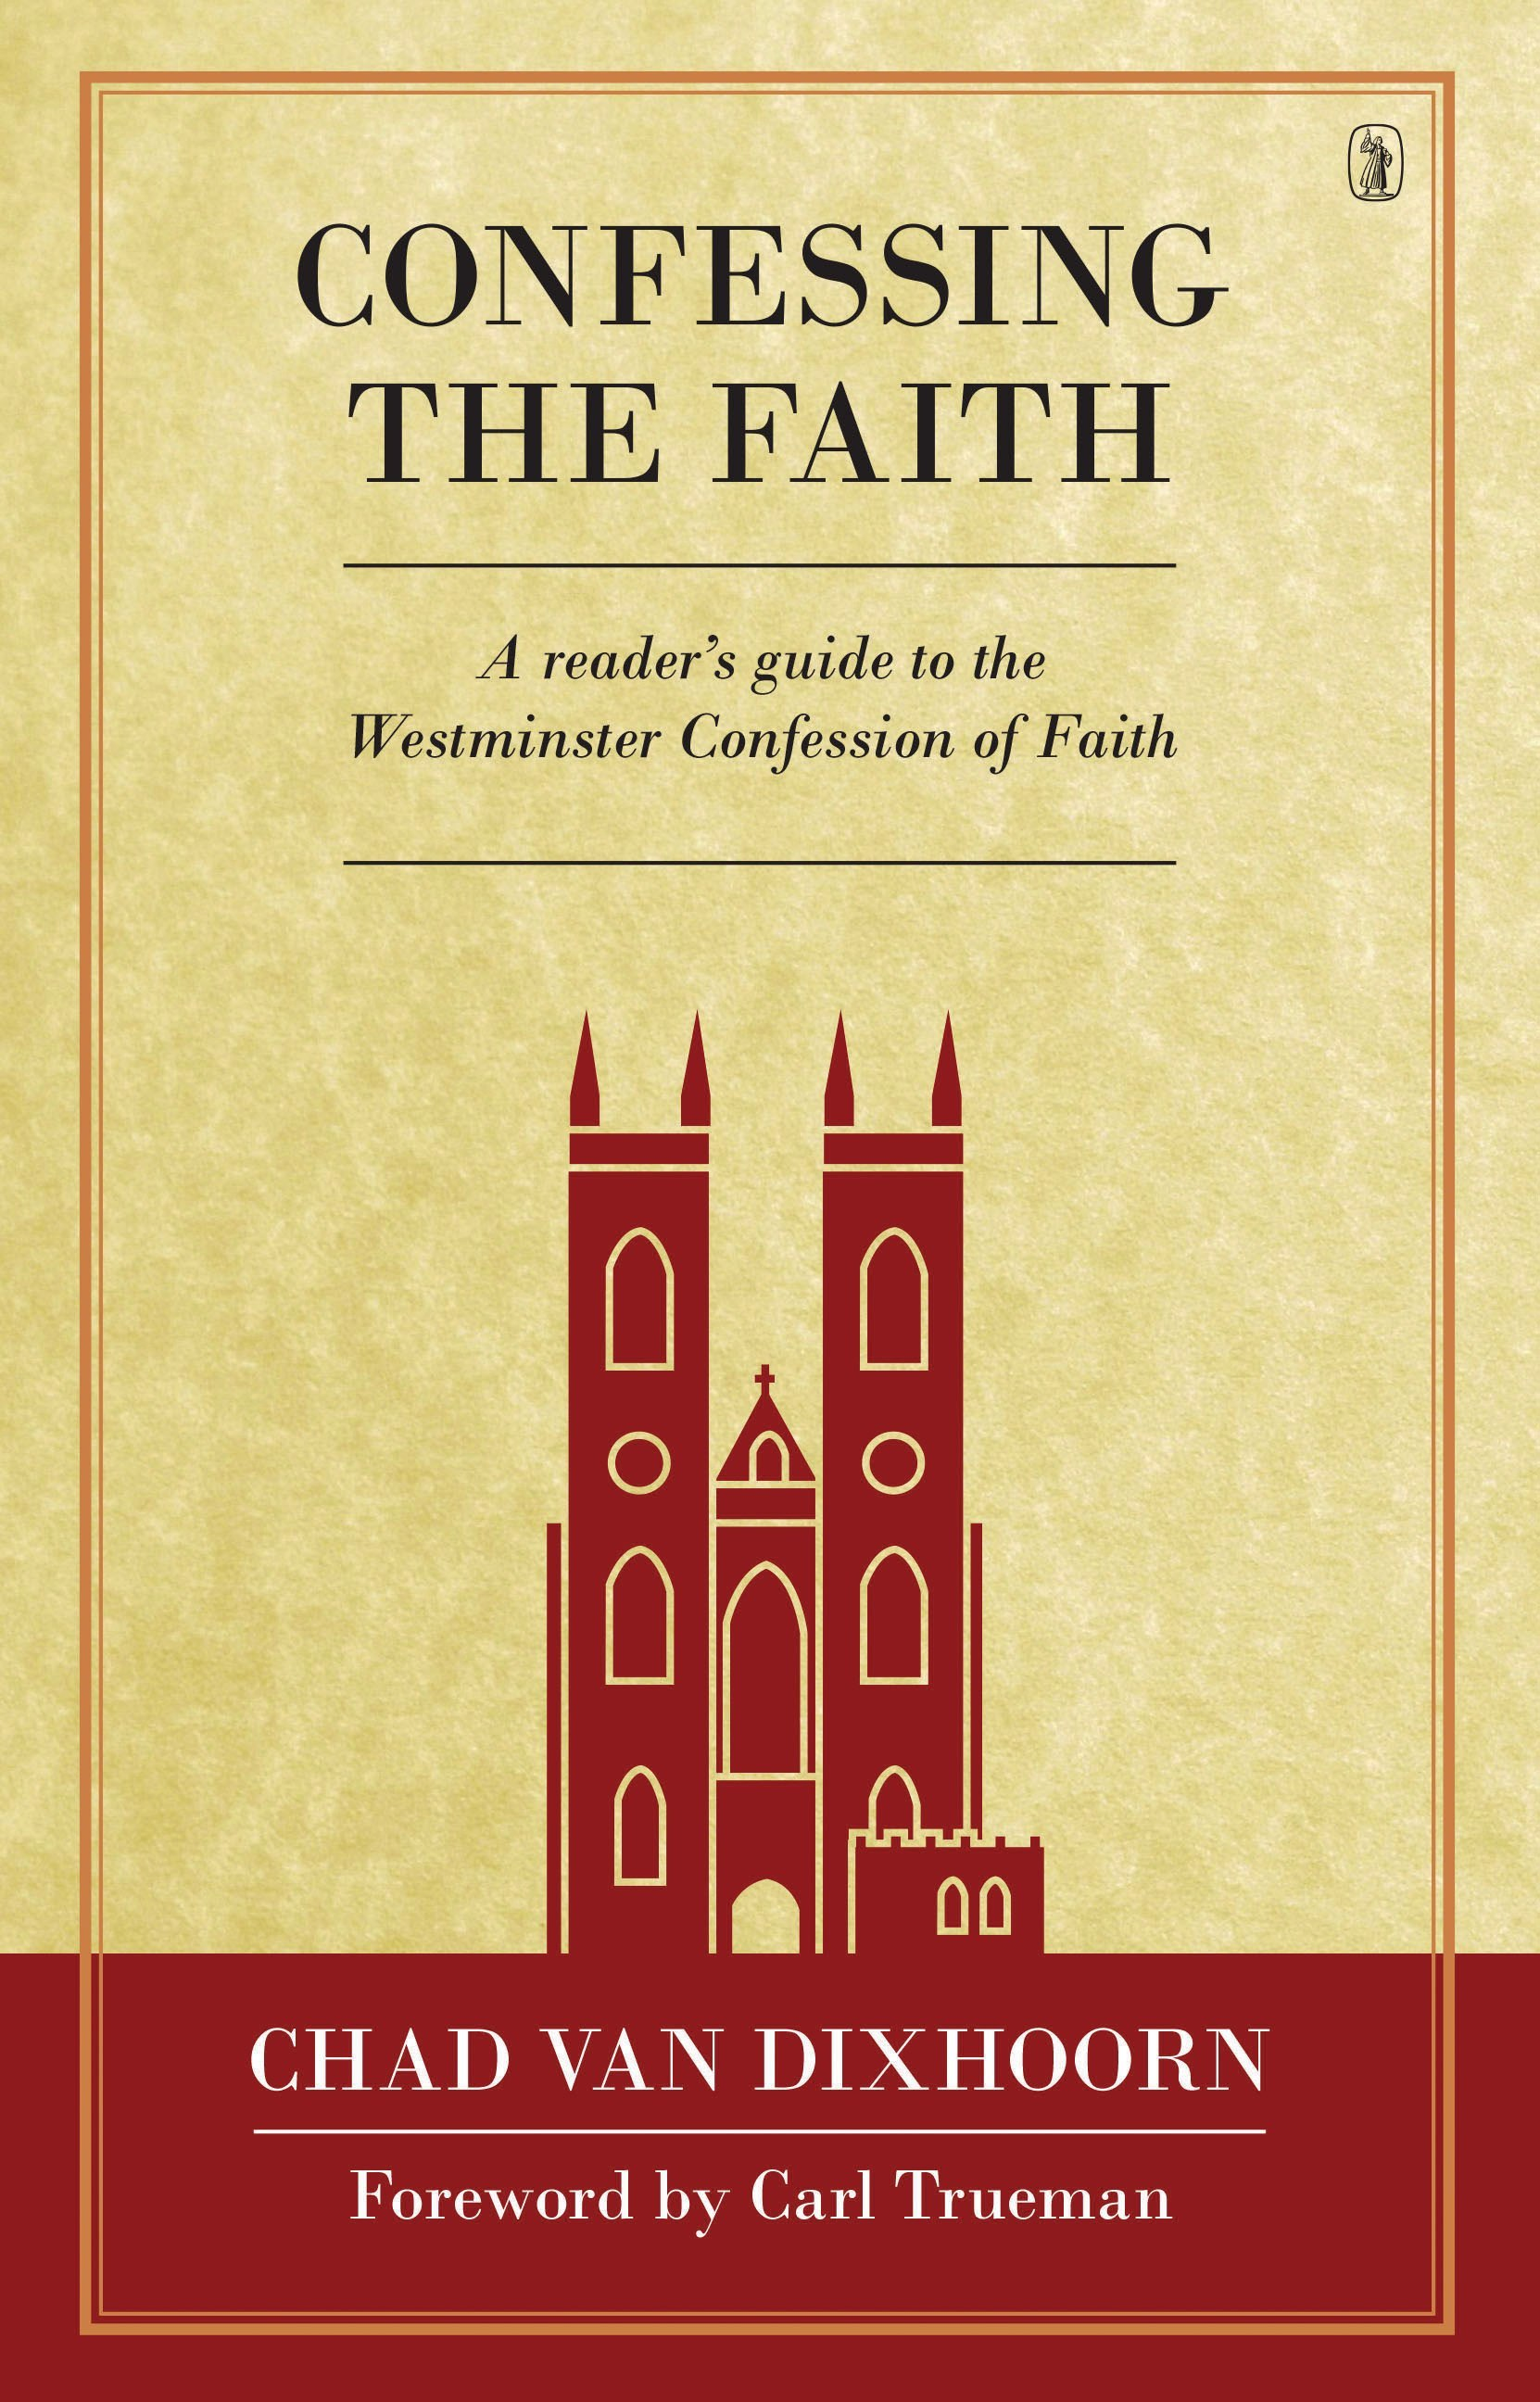 confessing the faith book review dangitbill